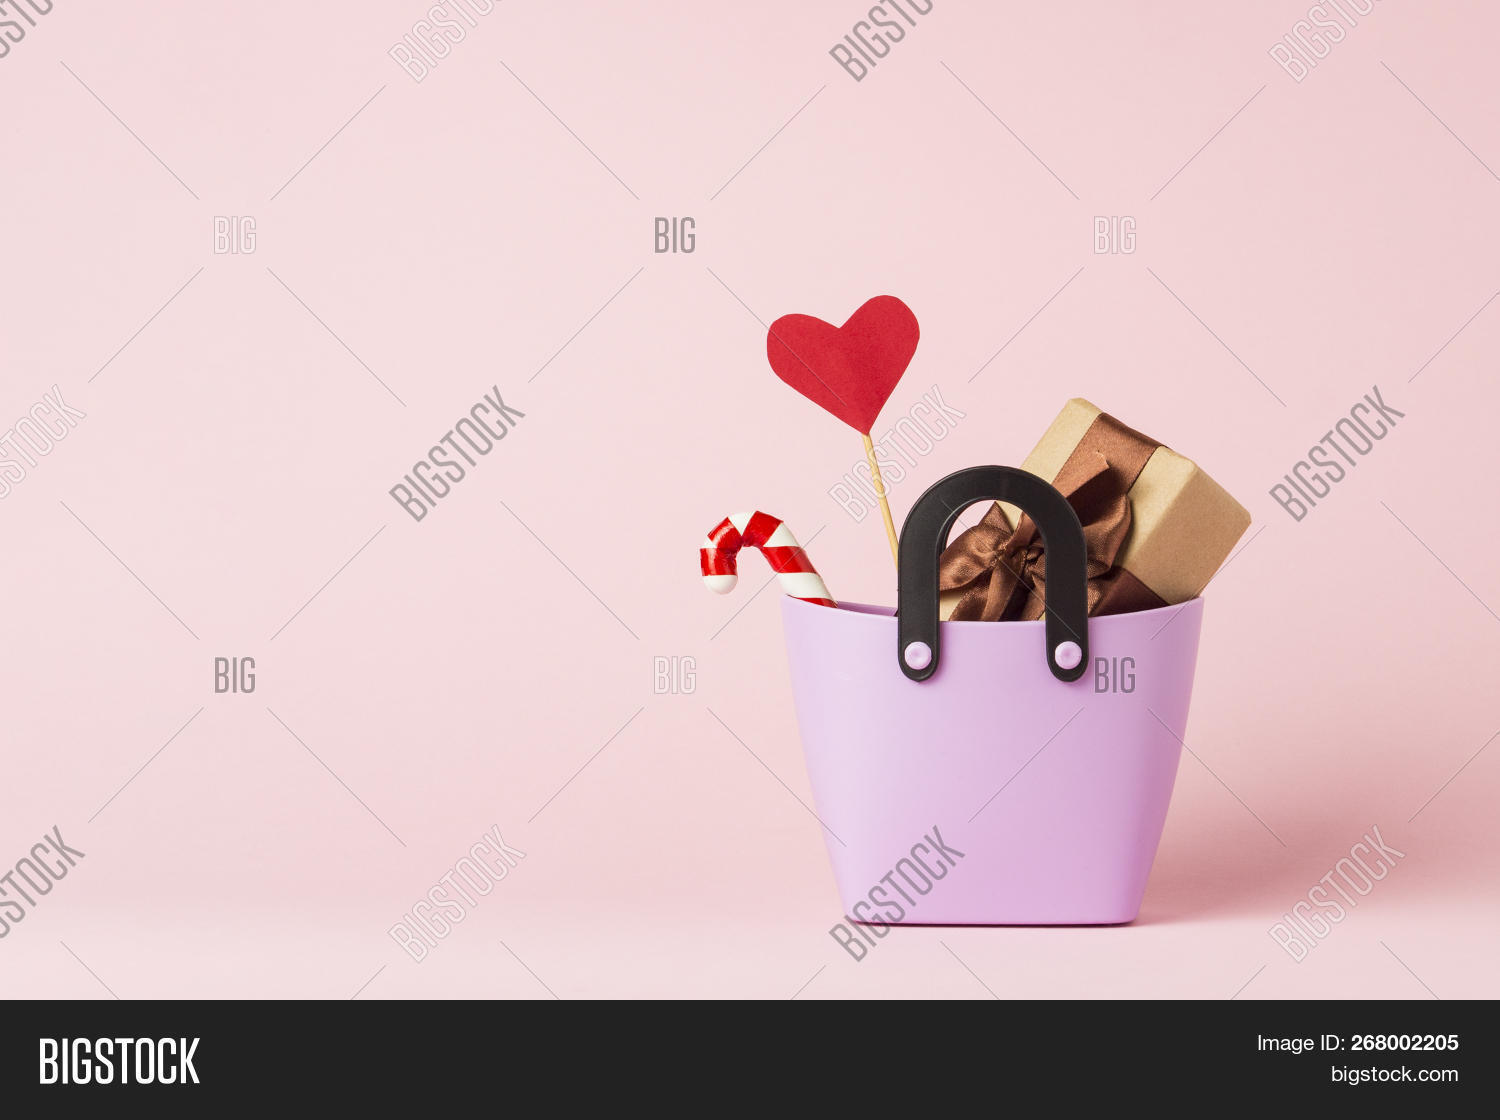 Small Plastic Bag Image Photo Free Trial Bigstock